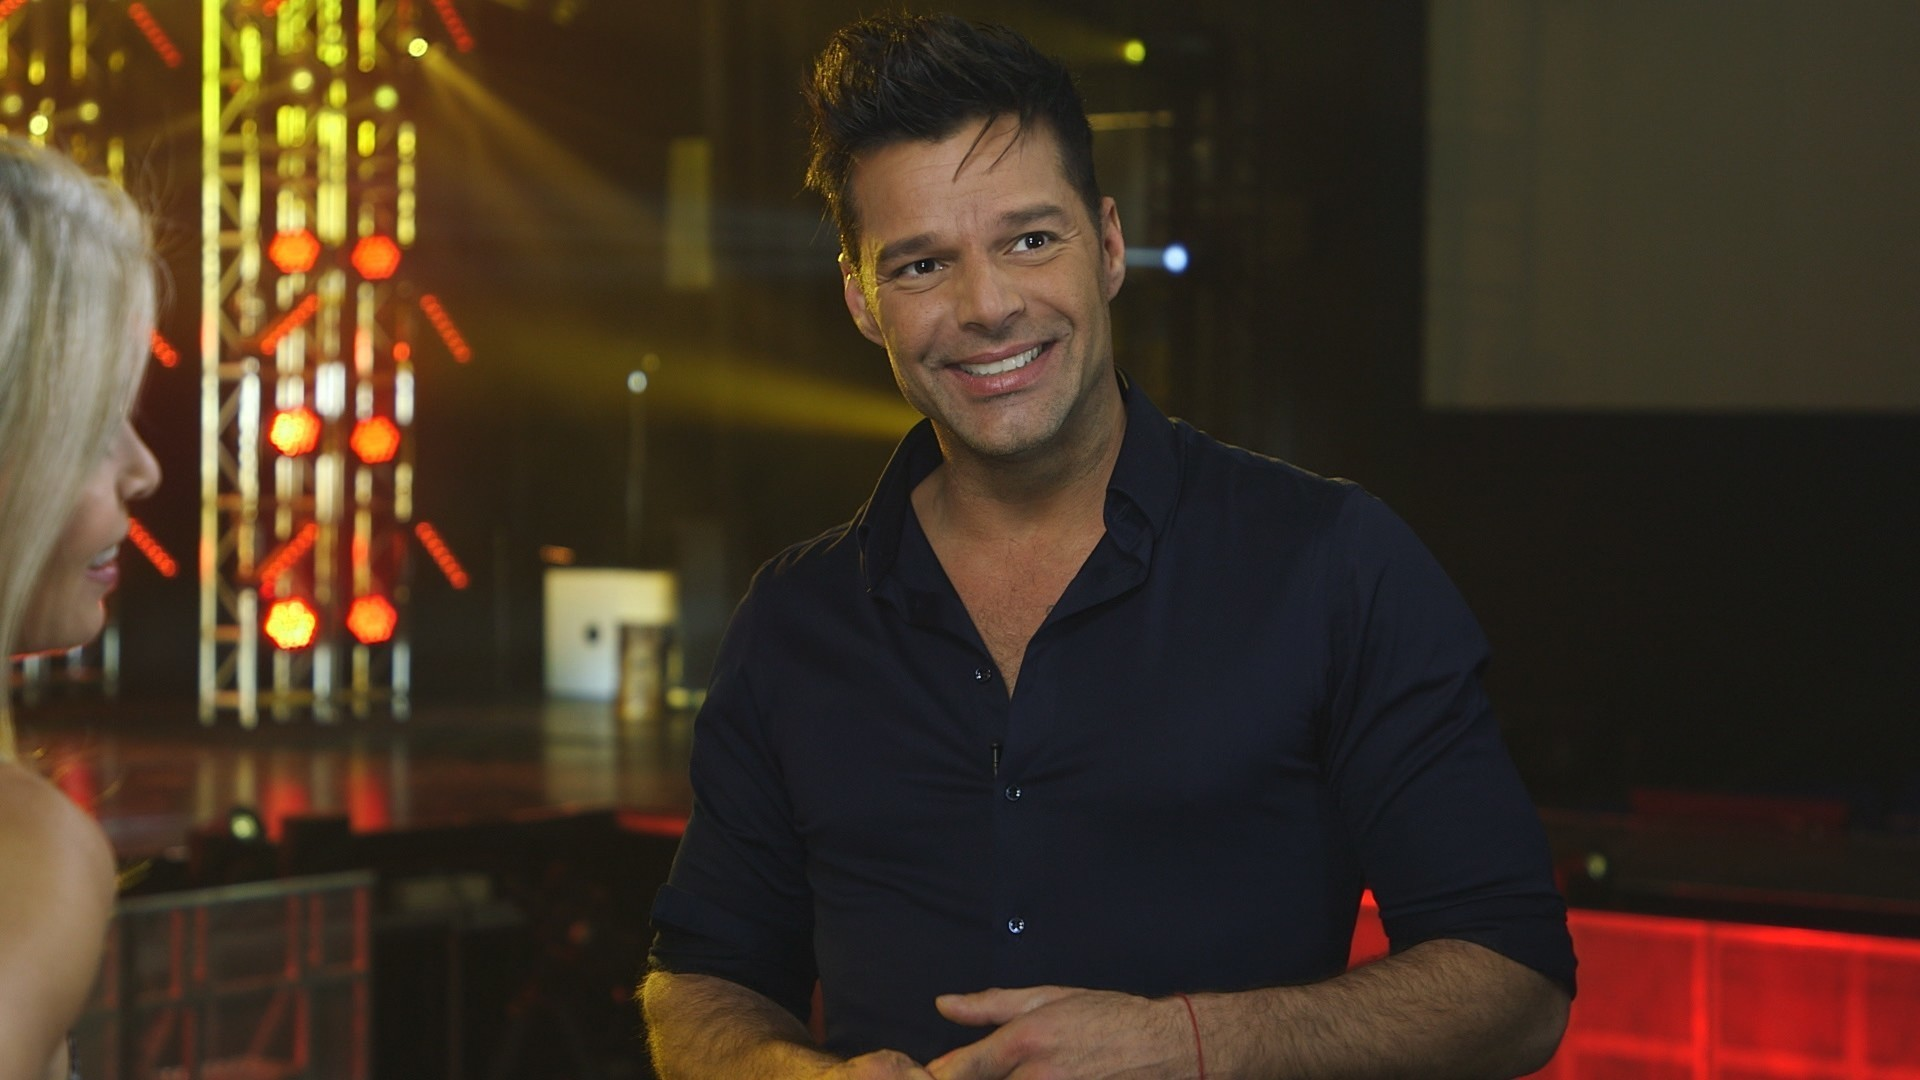 Ricky Martin CBS Sunday Morning | Entertainment News 2017 | Celebrity News 2017 | Celebrity Gossip